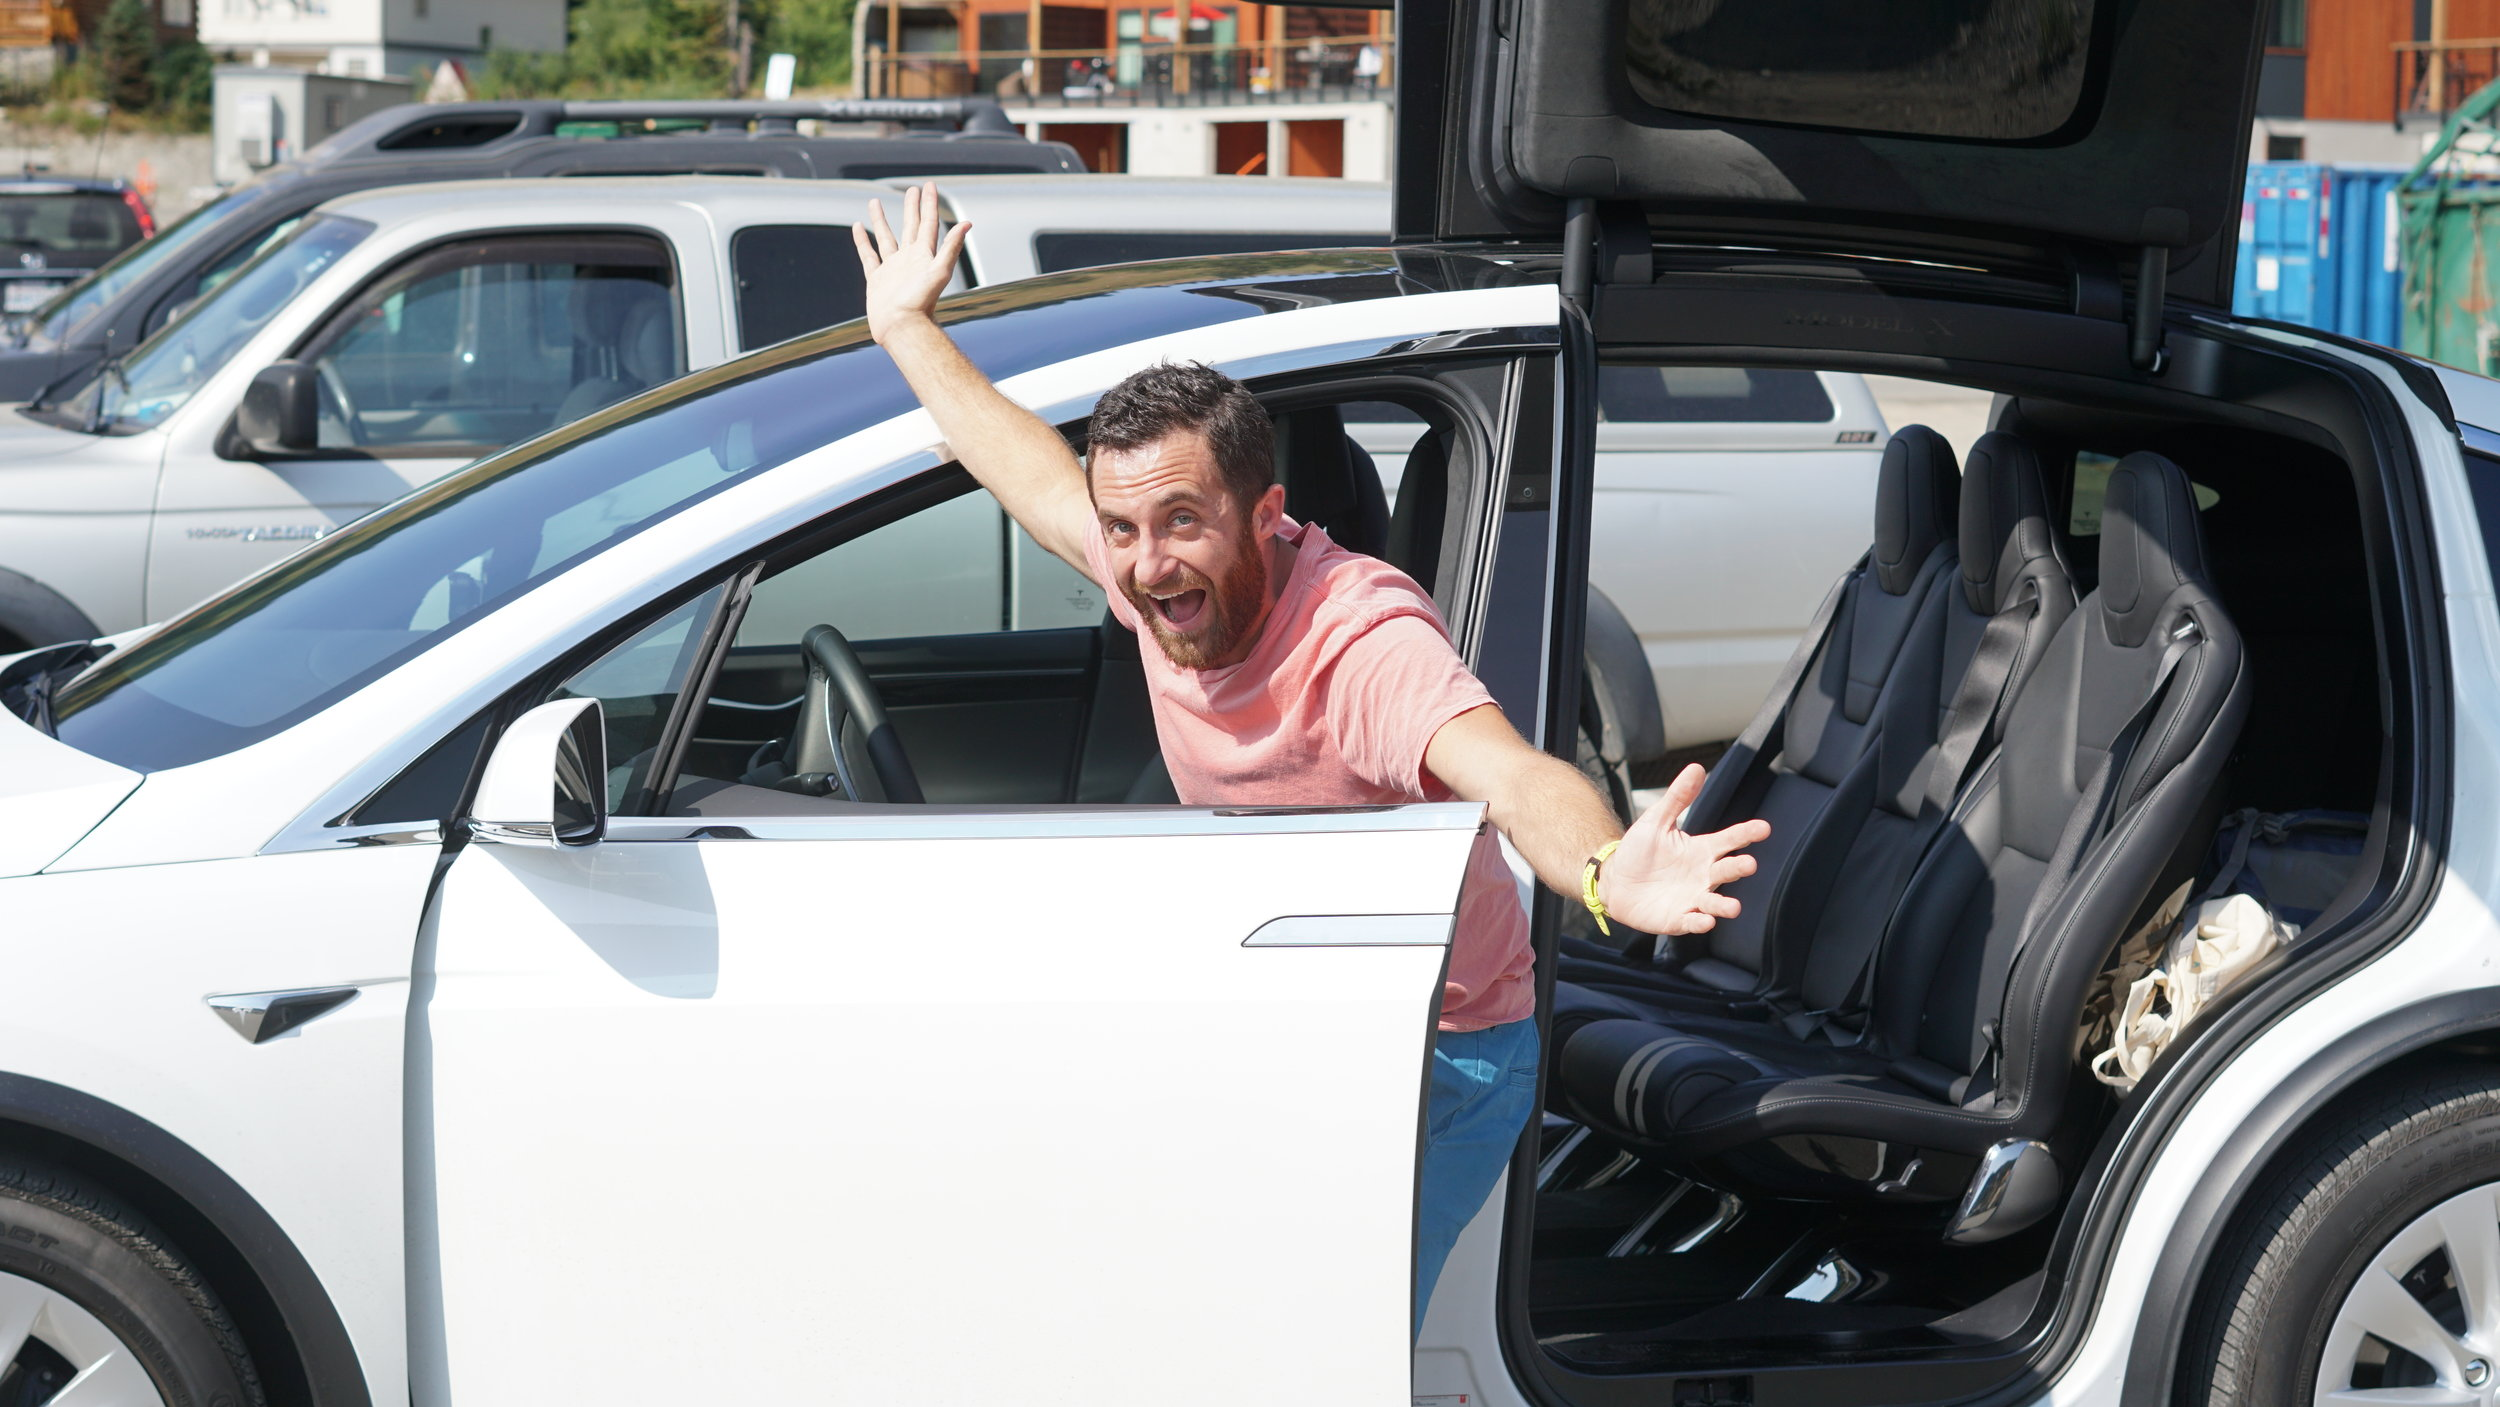 I've been a fan-boy of Tesla for a while. A few years ago, I rented a Model X off of  Turo  for a day. It was awesome, minus a certain  Falcon door incident  with Dad.